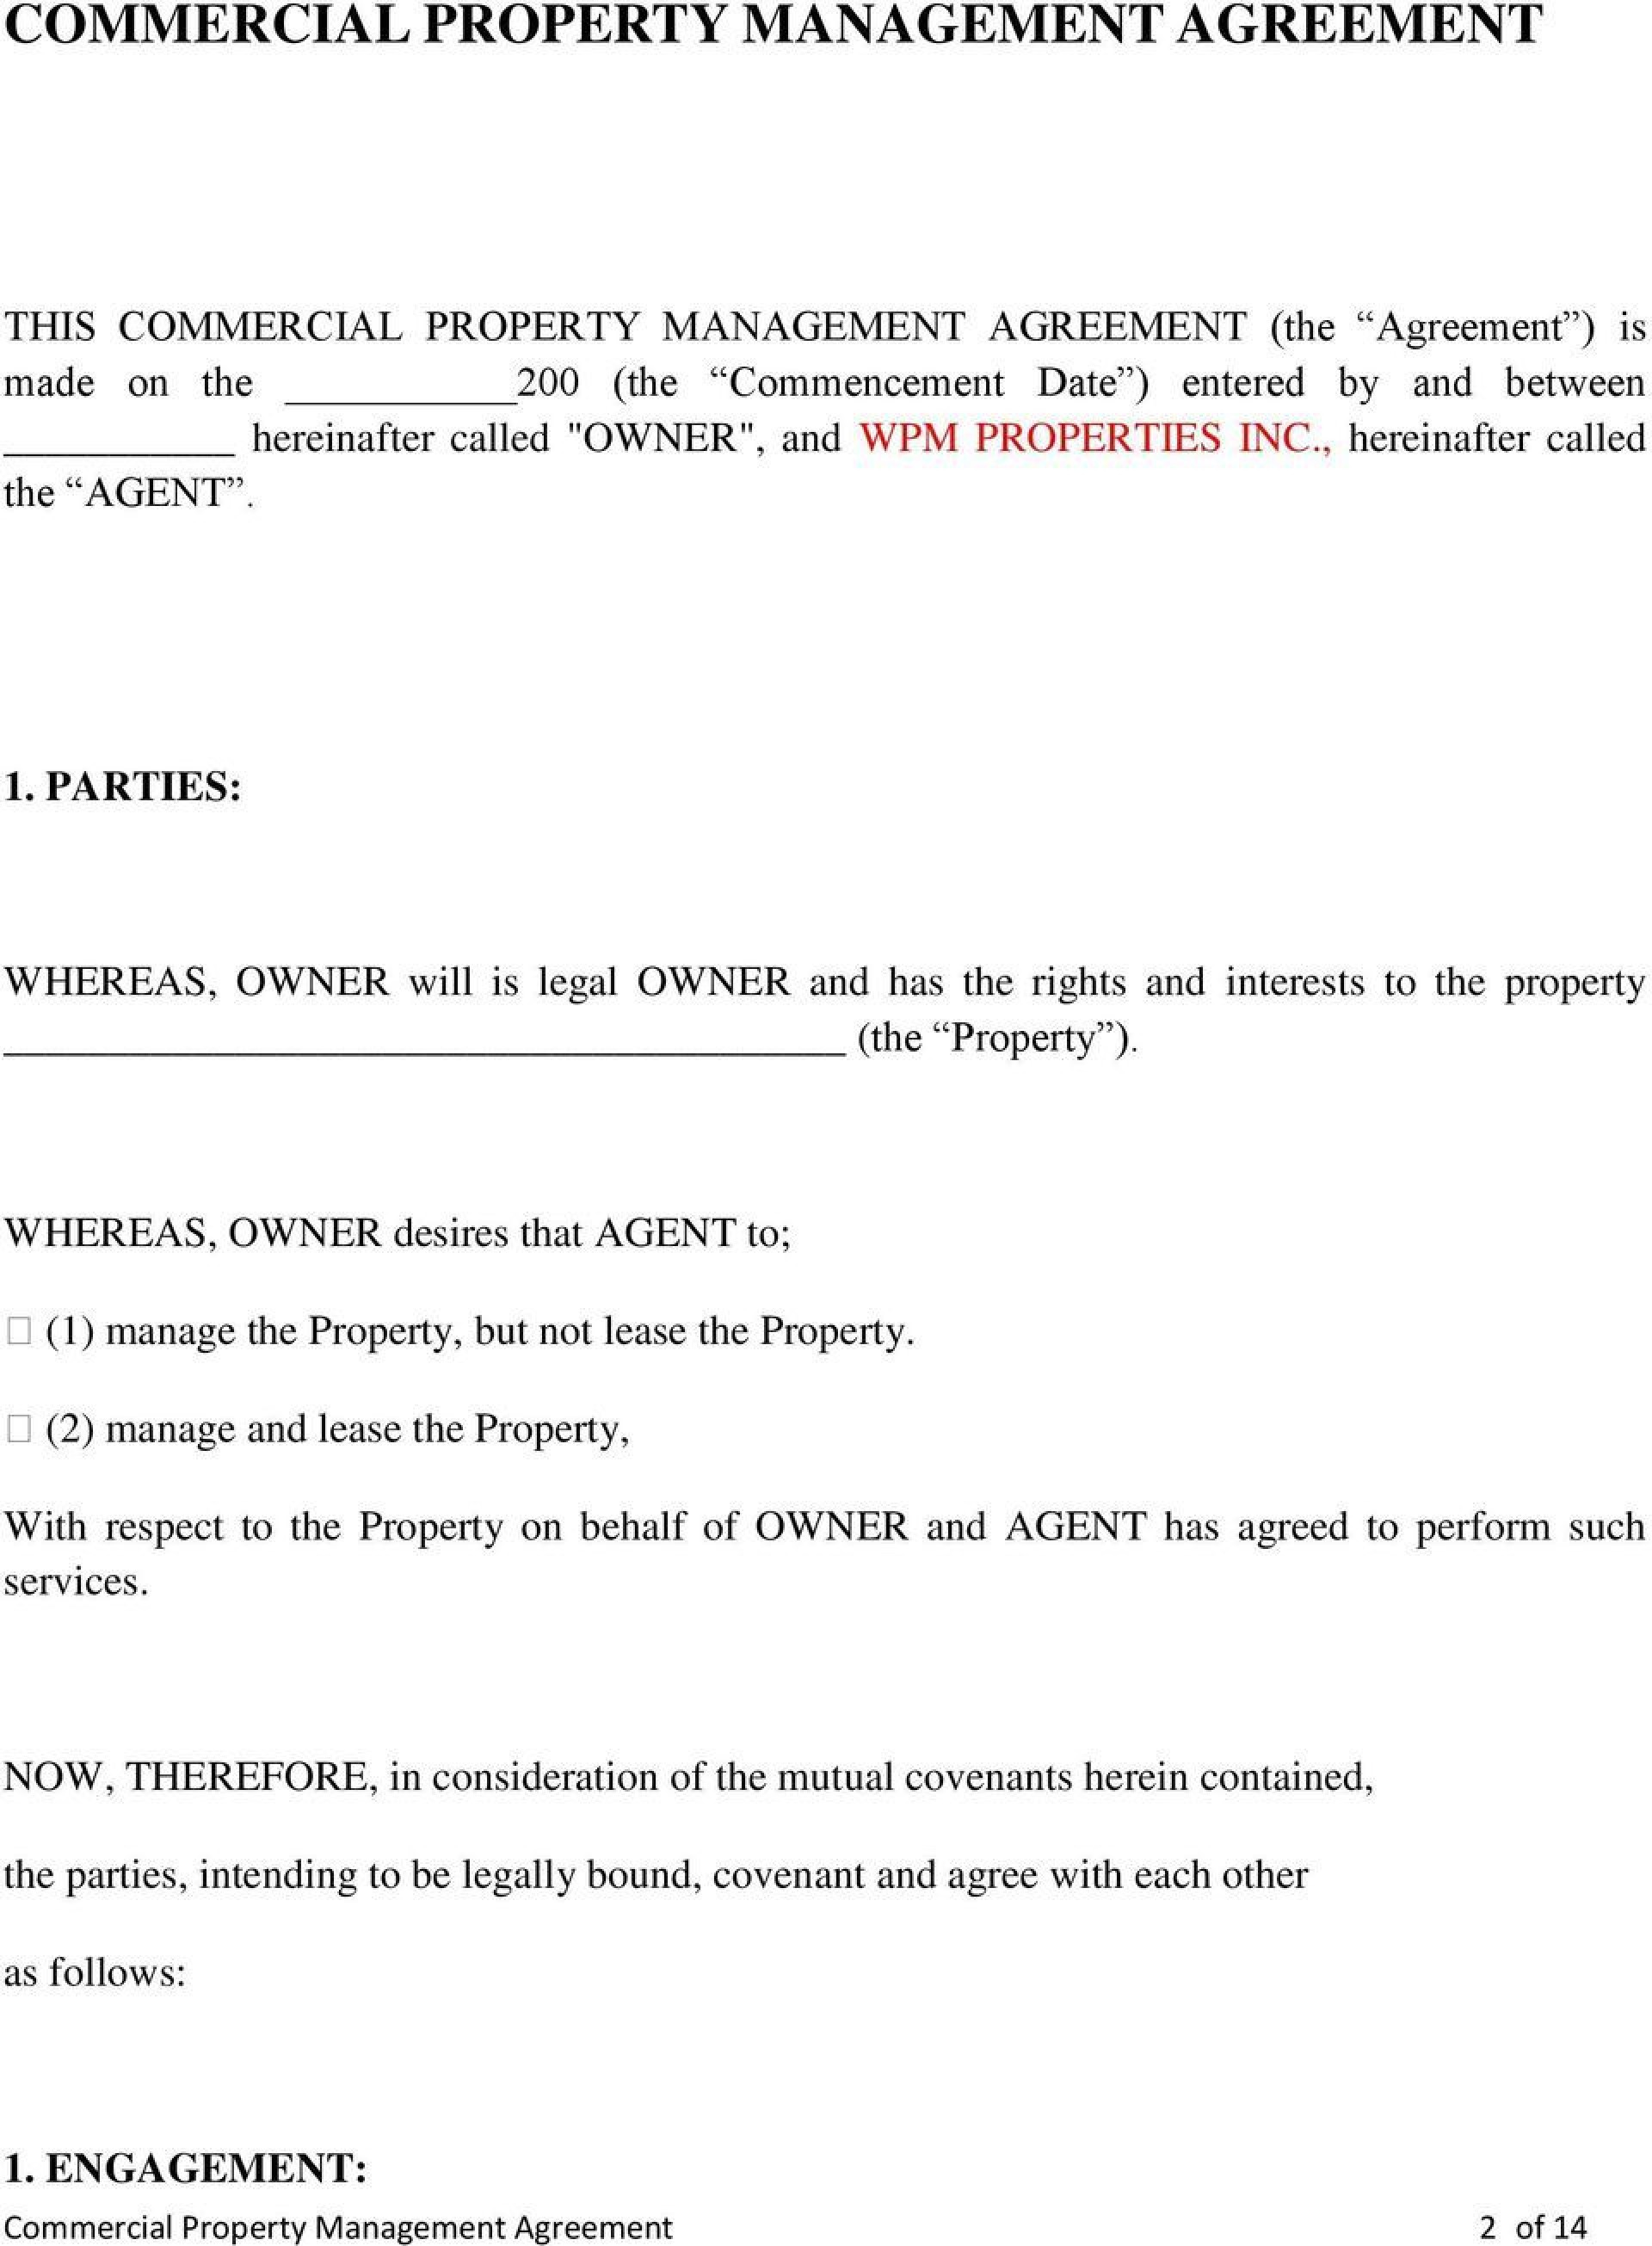 005 Imposing Property Management Contract Form Sample  Agreement Template Free Uk1920